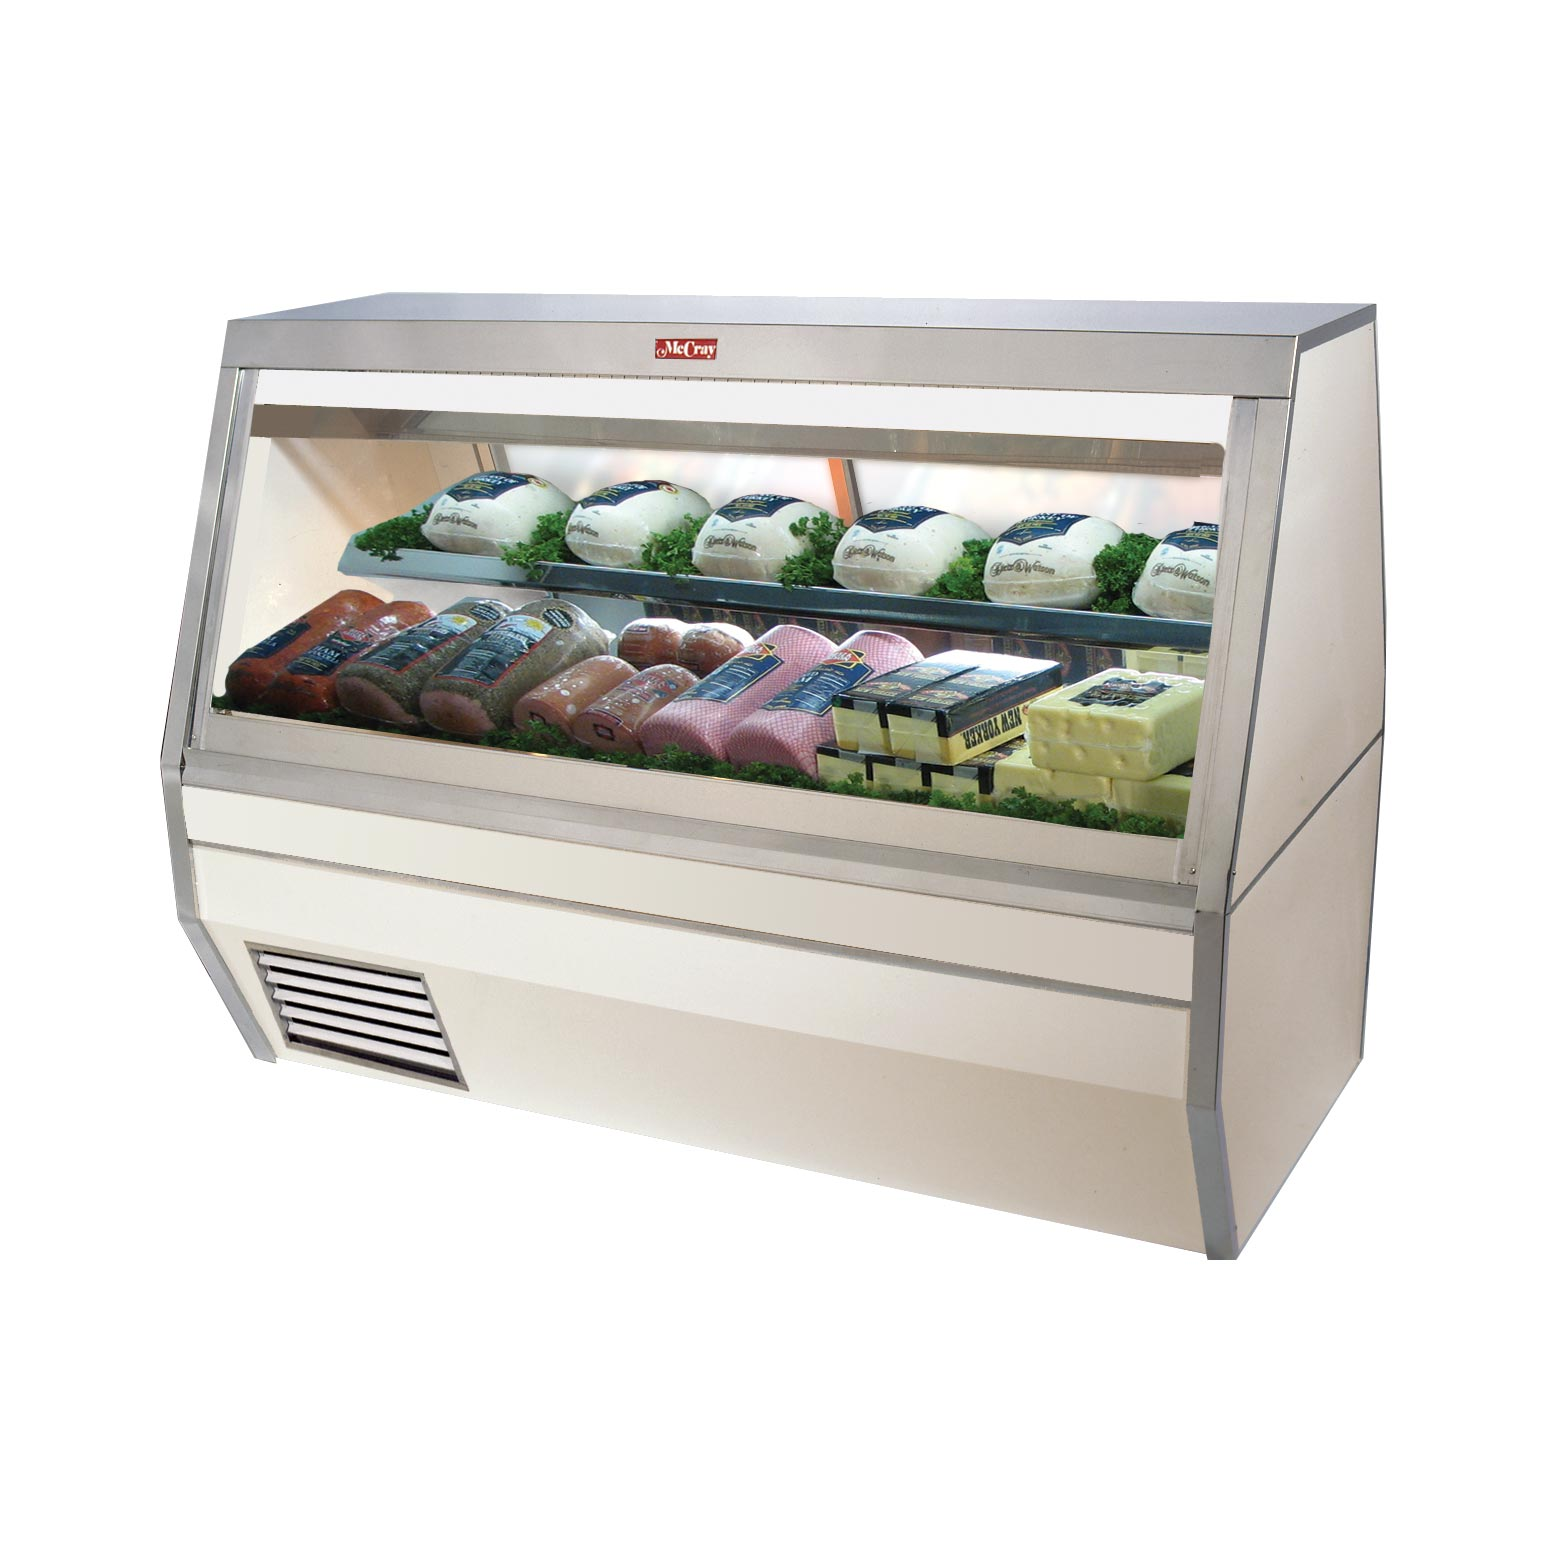 Howard-McCray R-CDS35-4-LED display case, refrigerated deli